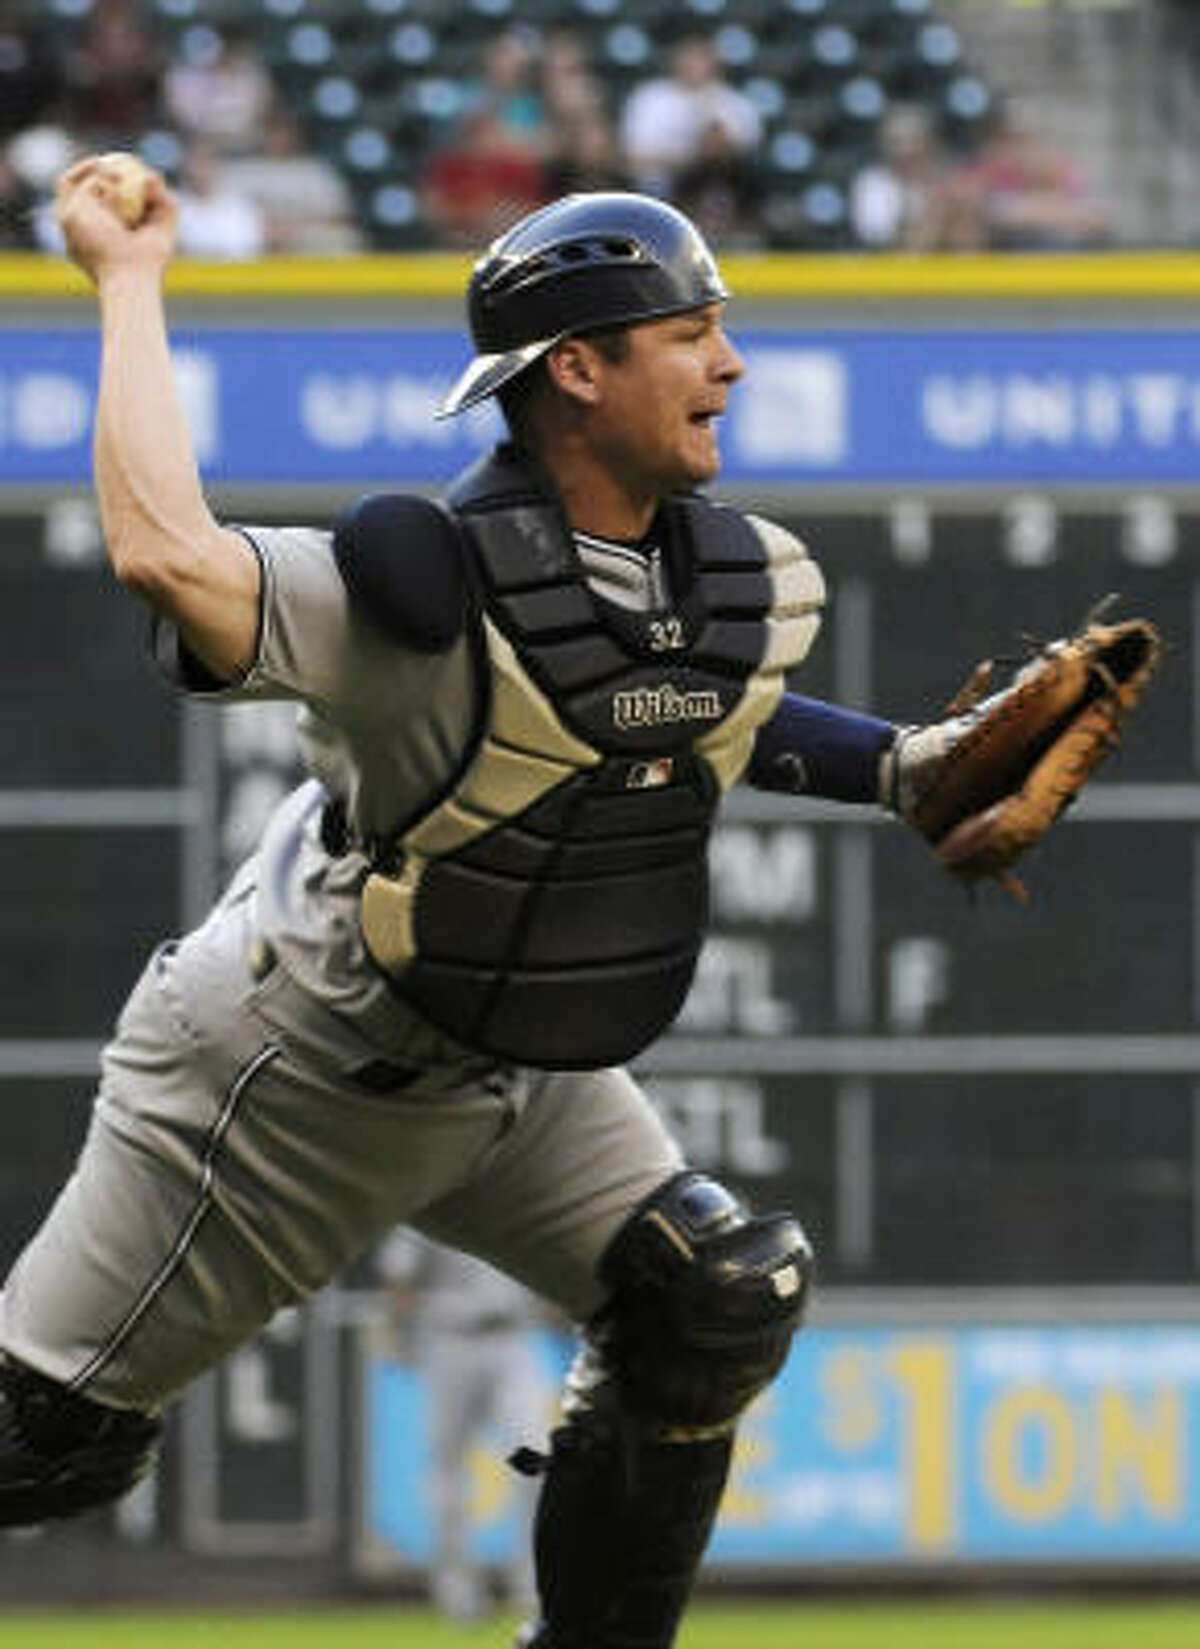 Padres catcher Rob Johnson throws to first base too late to get the out on Astros' Michael Bourn.